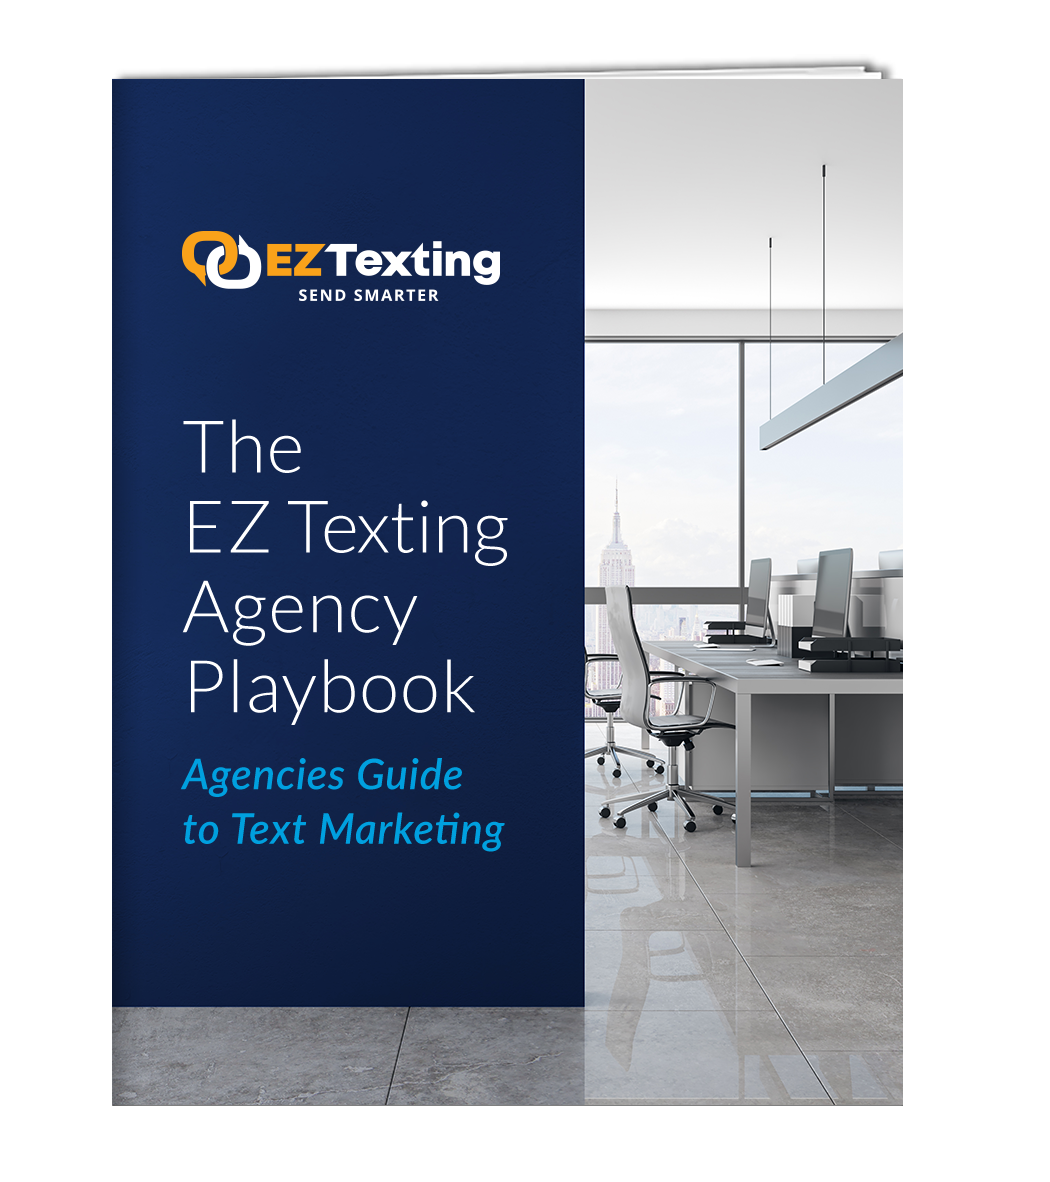 The EZ Texting Agency Playbook